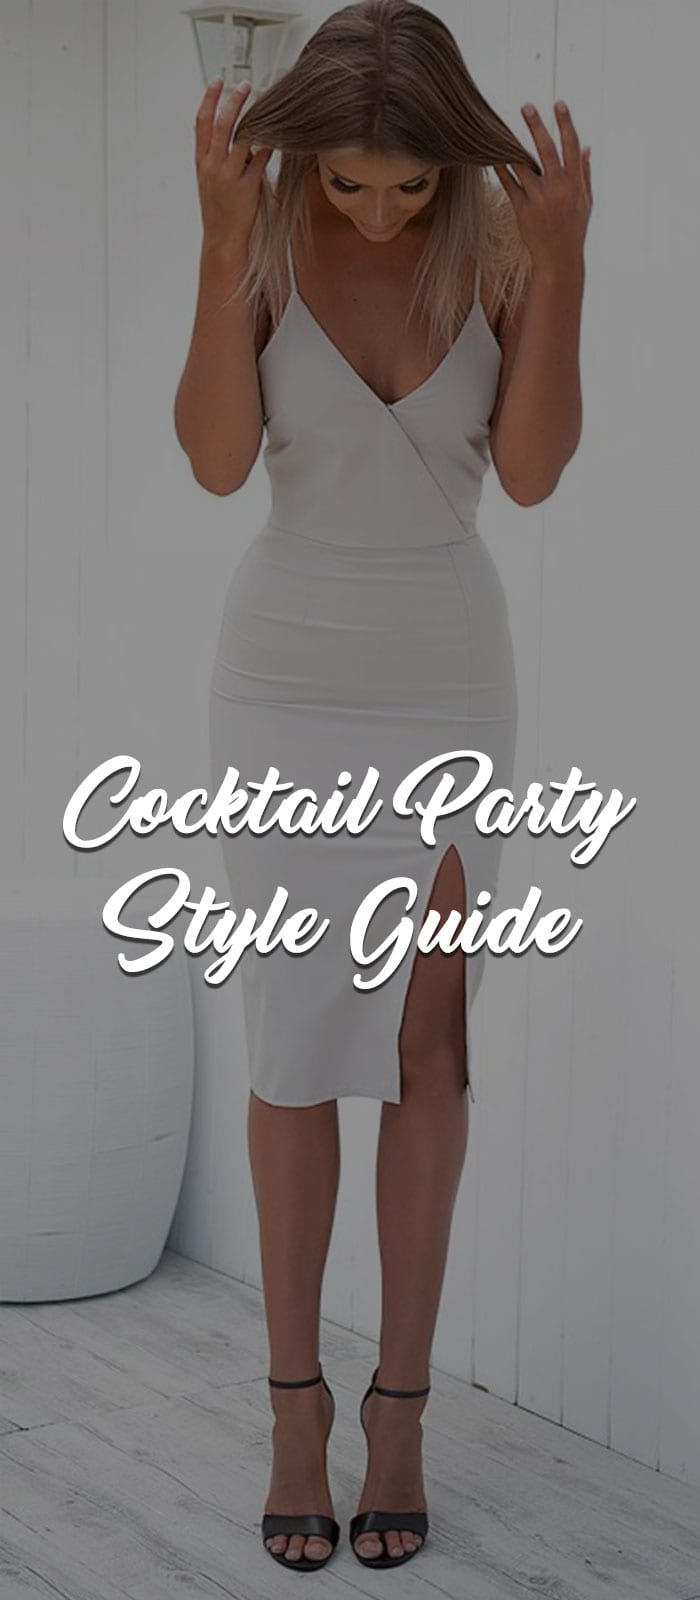 Cocktail Party Style Guide